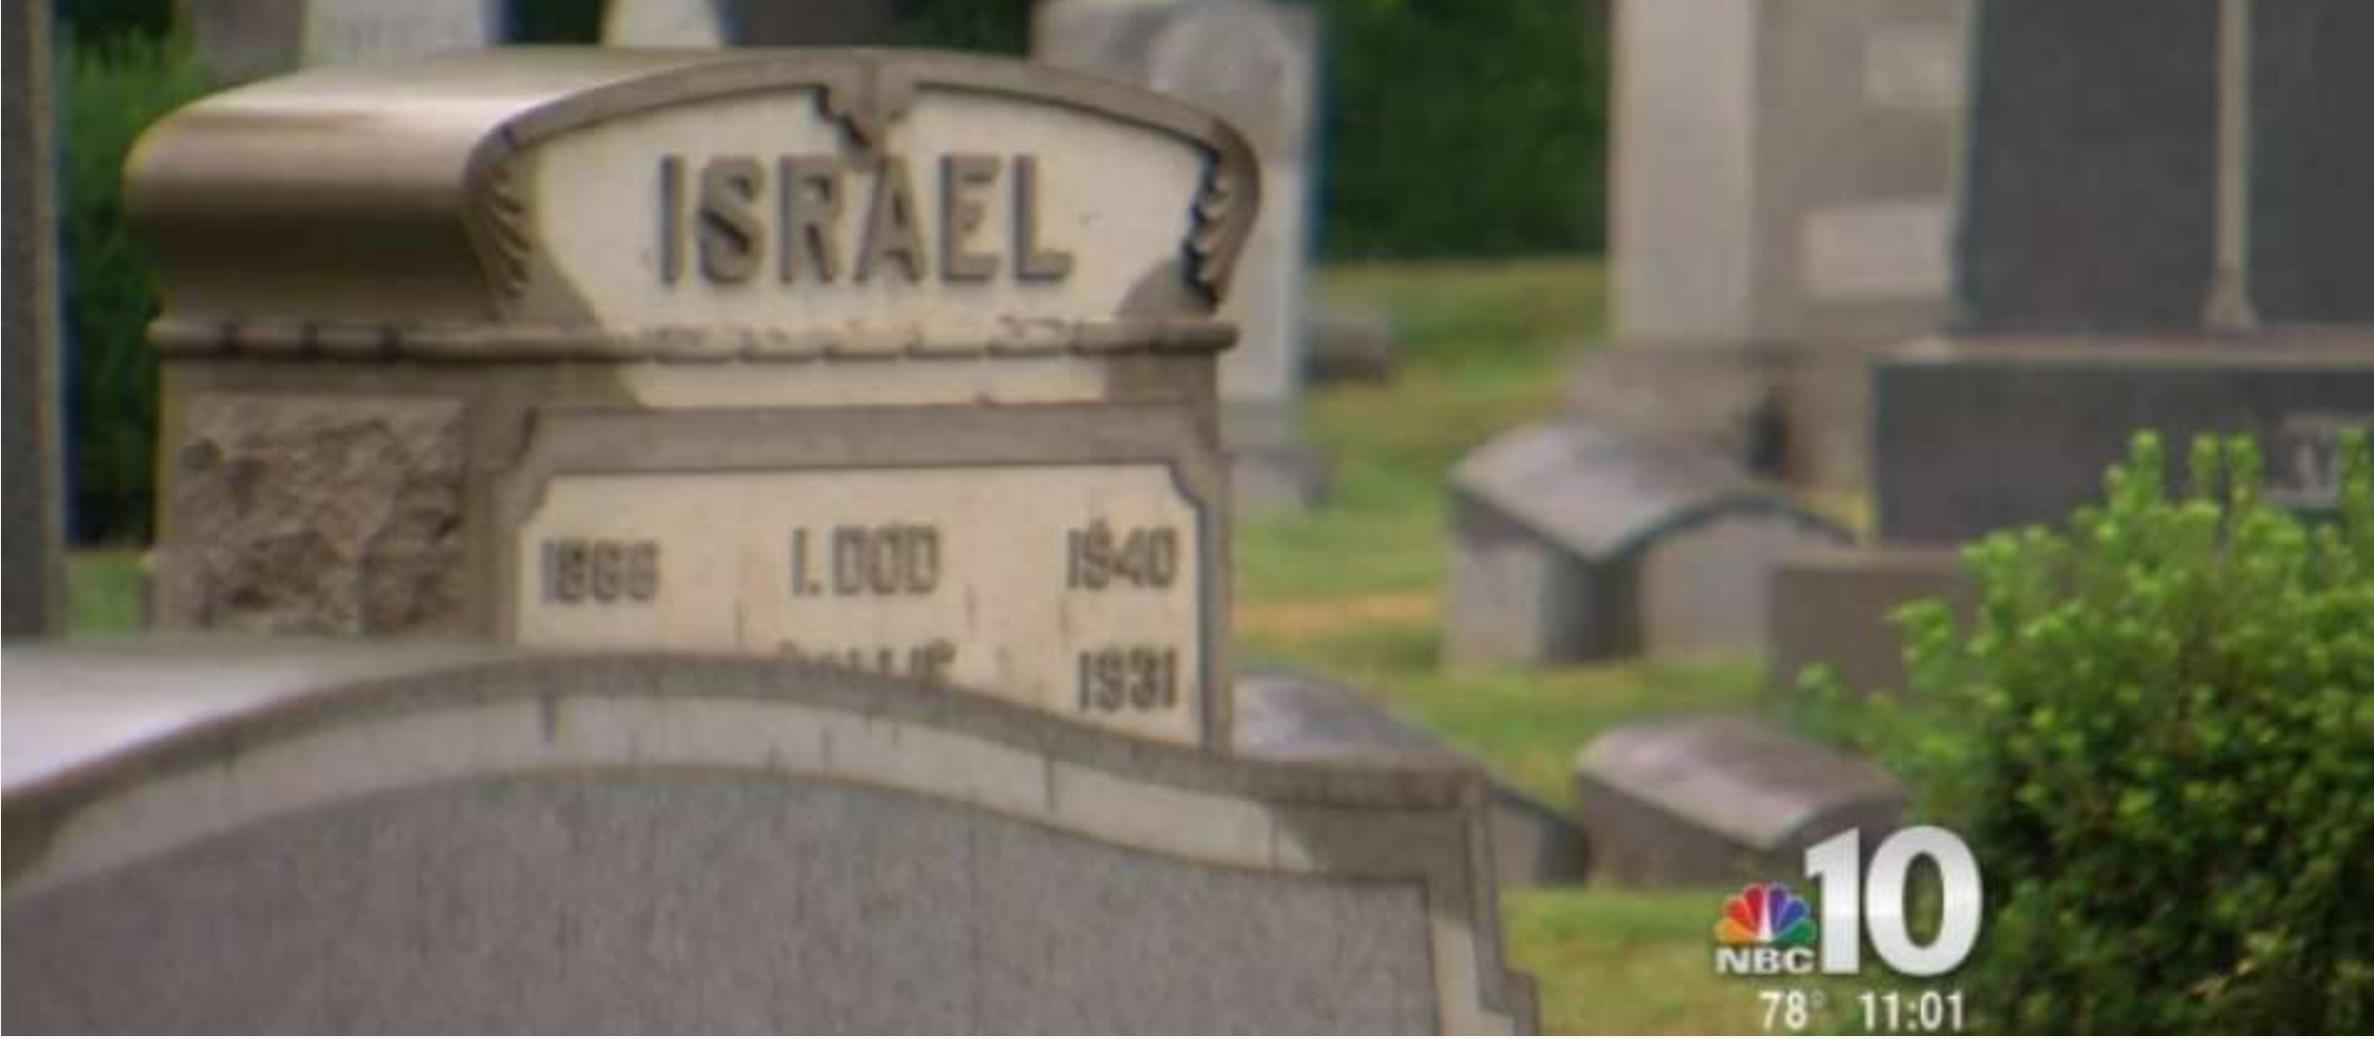 US: Over 100 headstones toppled in Jewish cemetery